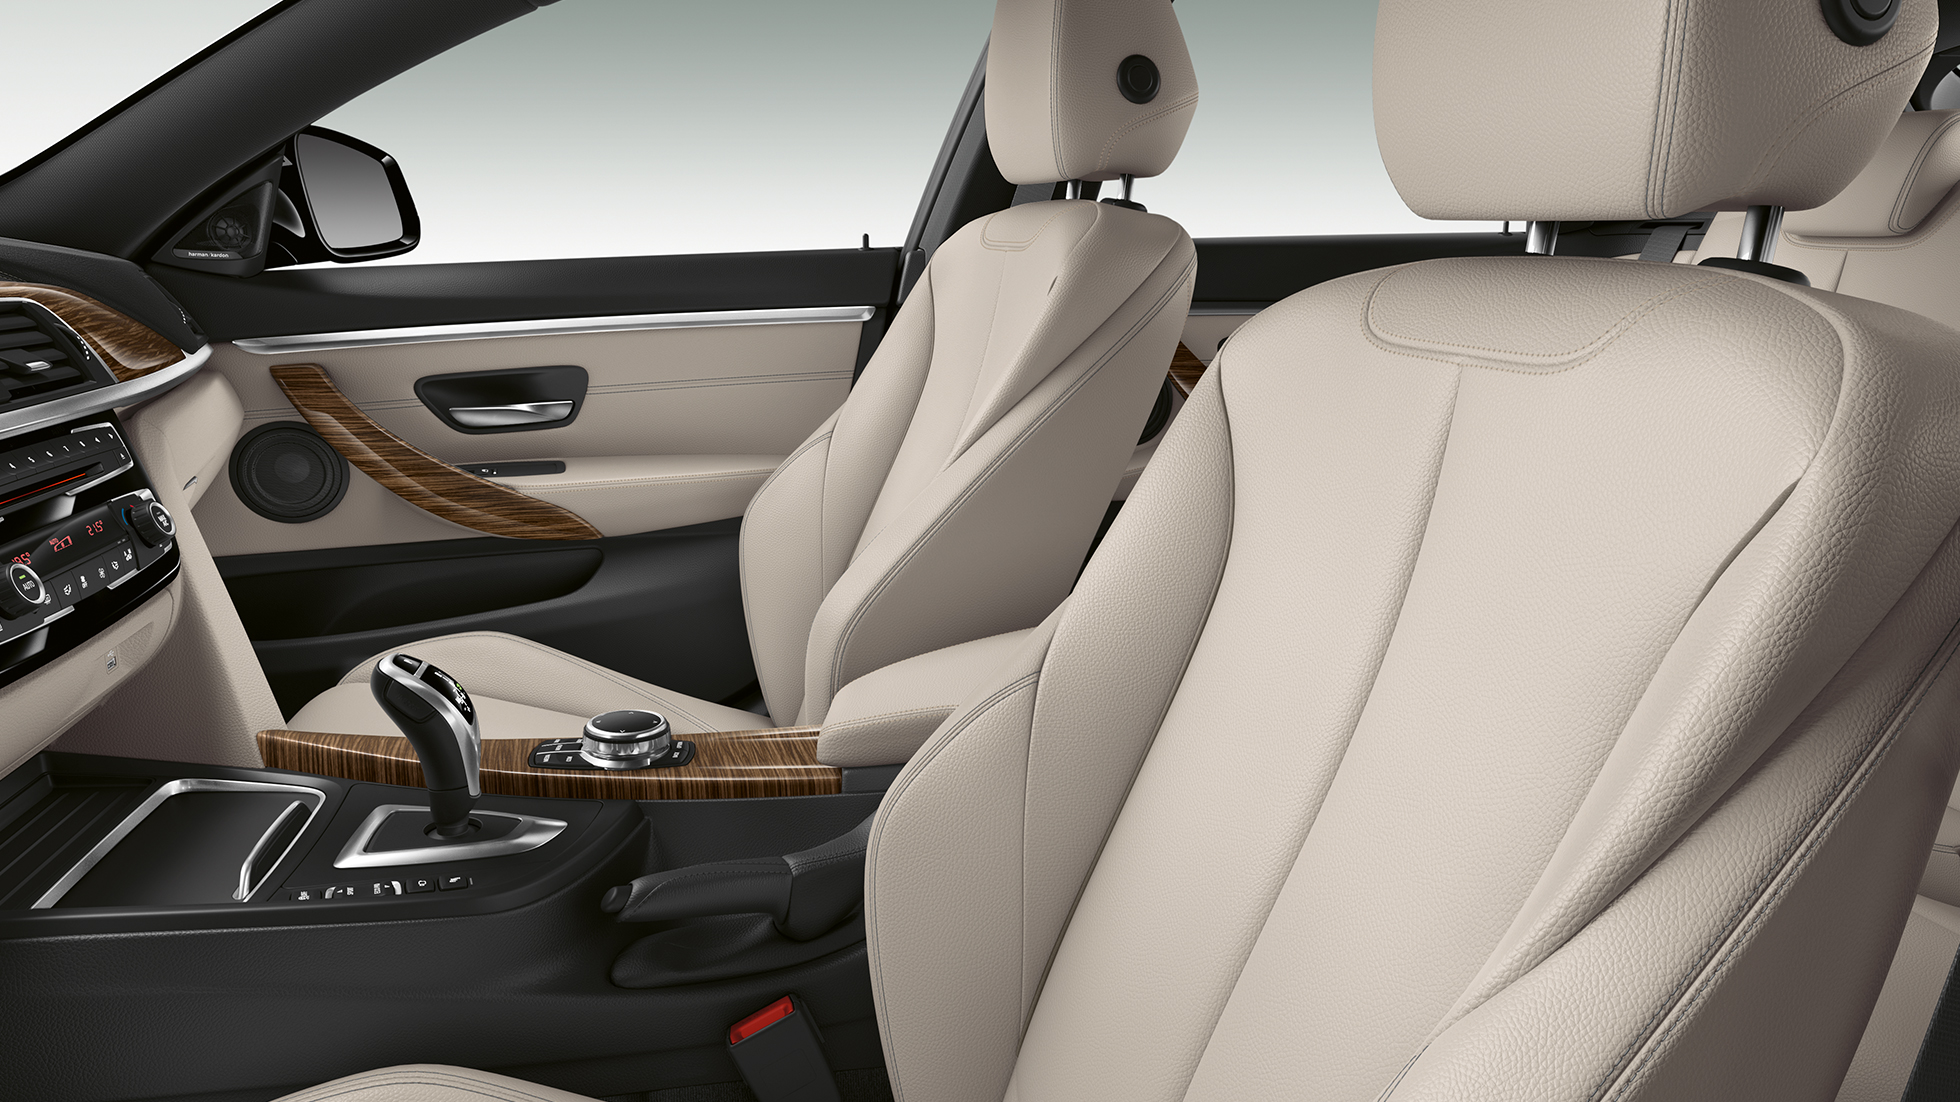 BMW 4 Series Gran Coupé, Model Luxury Line interior